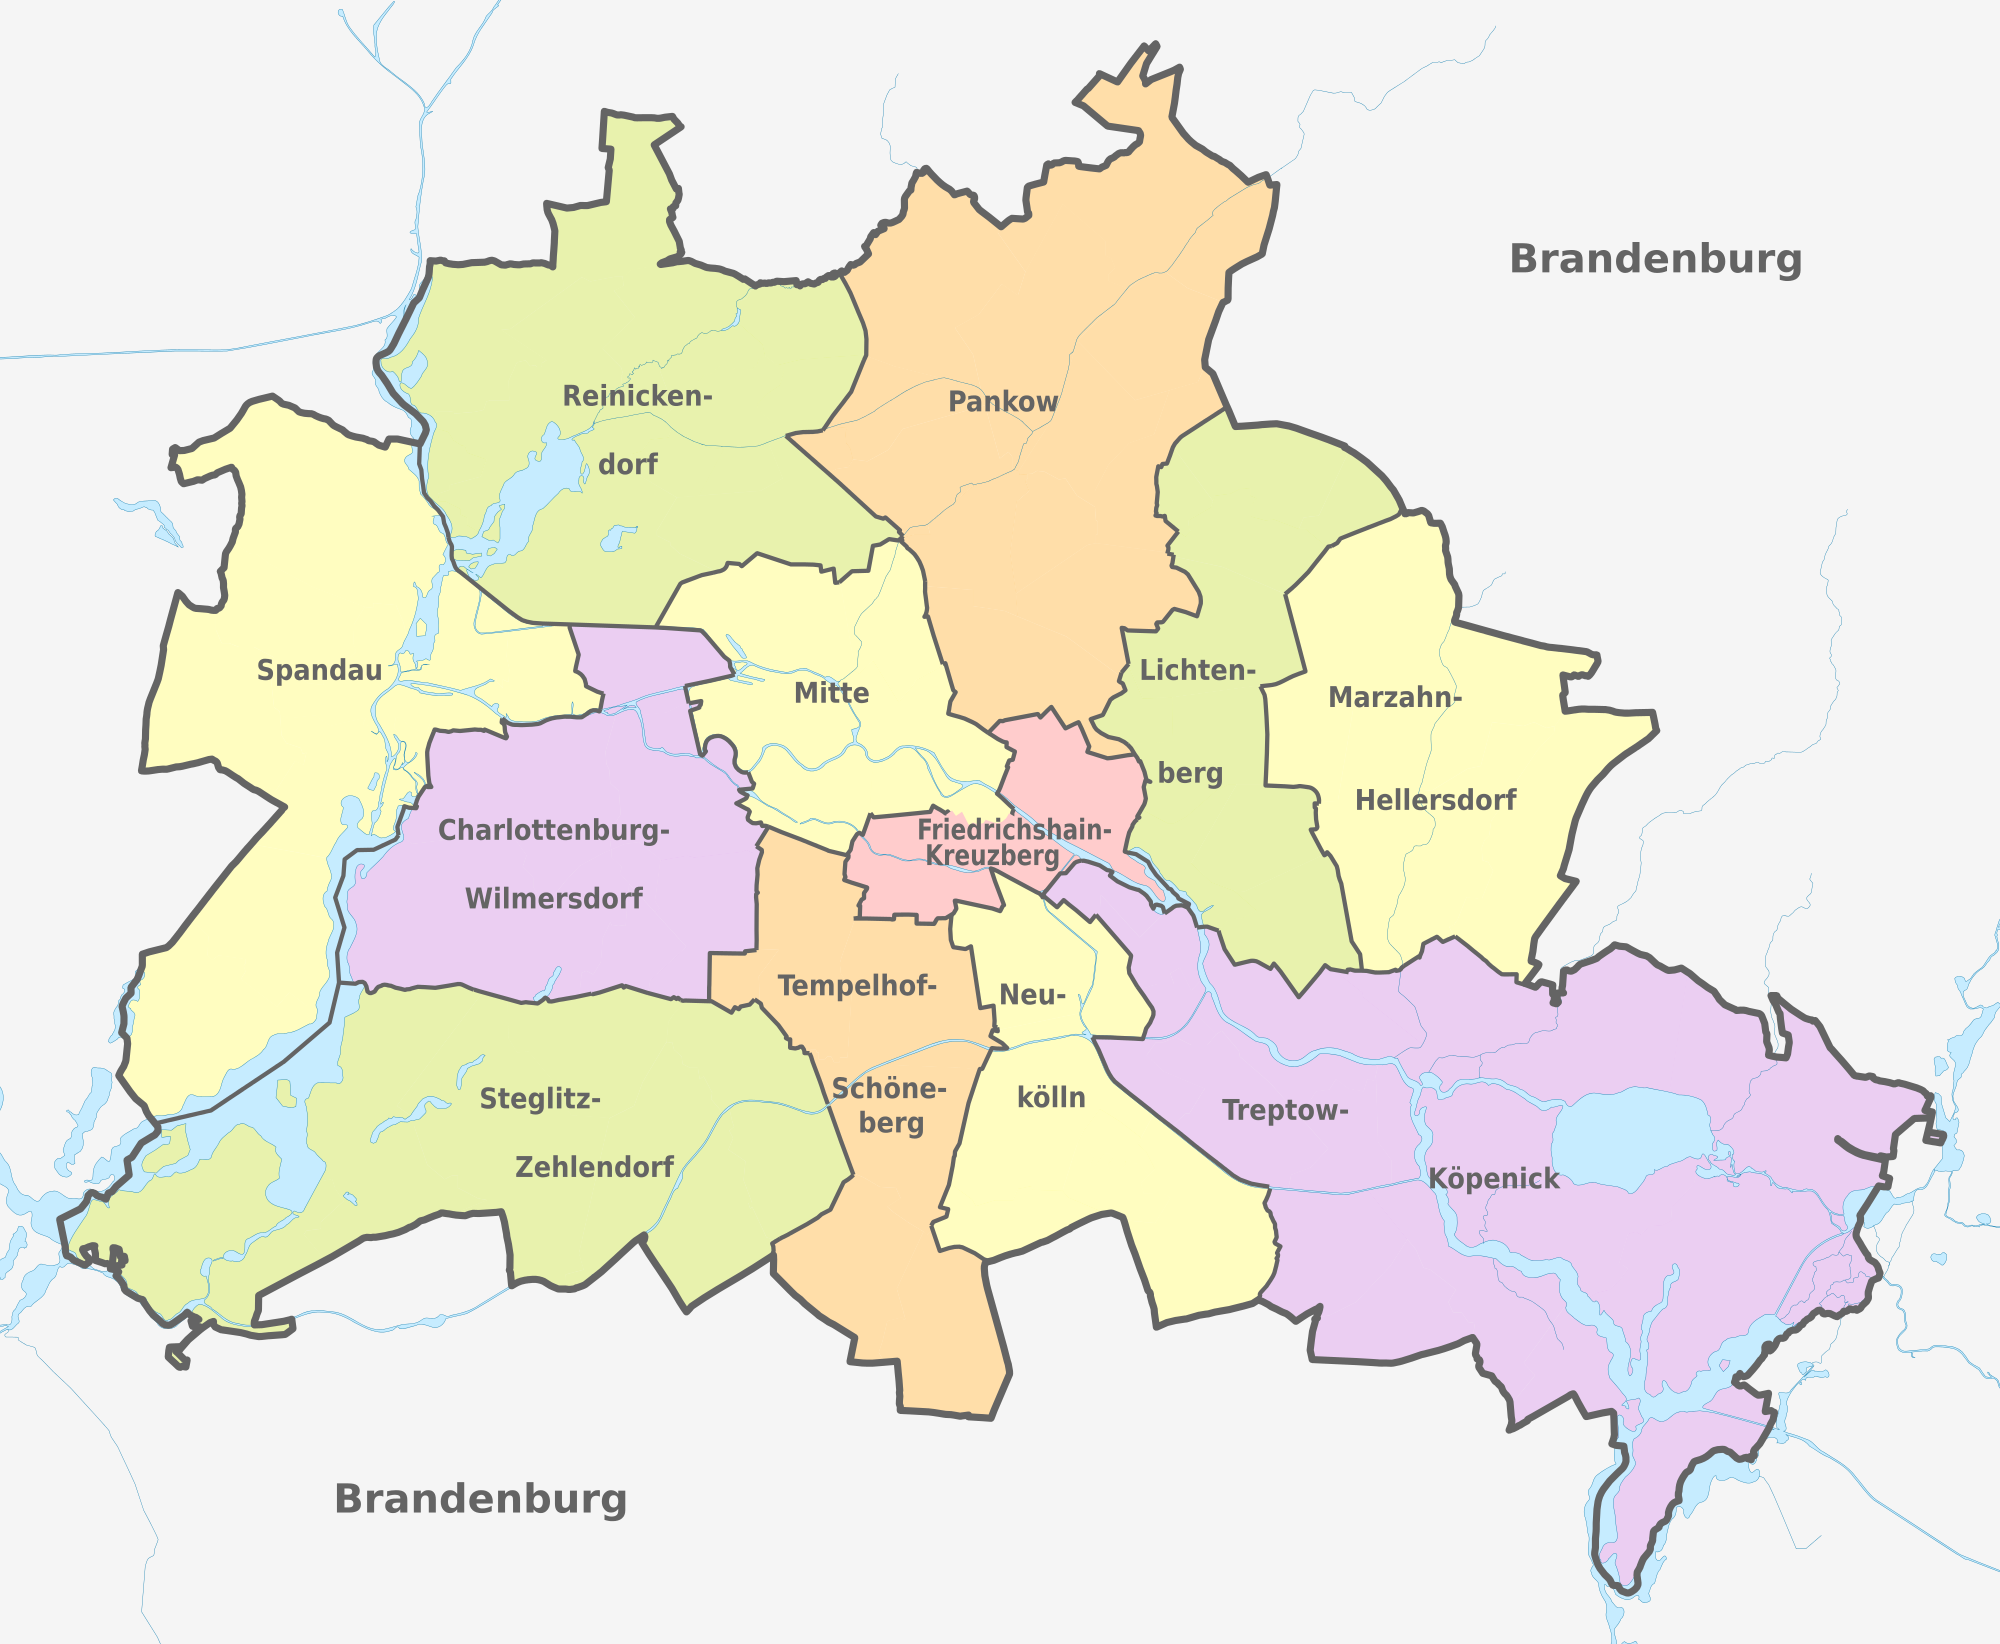 2000px Berlin Administrative Divisions Districts Boroughs Pop De Colored Svg Png Png 圖片 2000x1644 像素 已縮放 56 Administrative Division Berlin Map